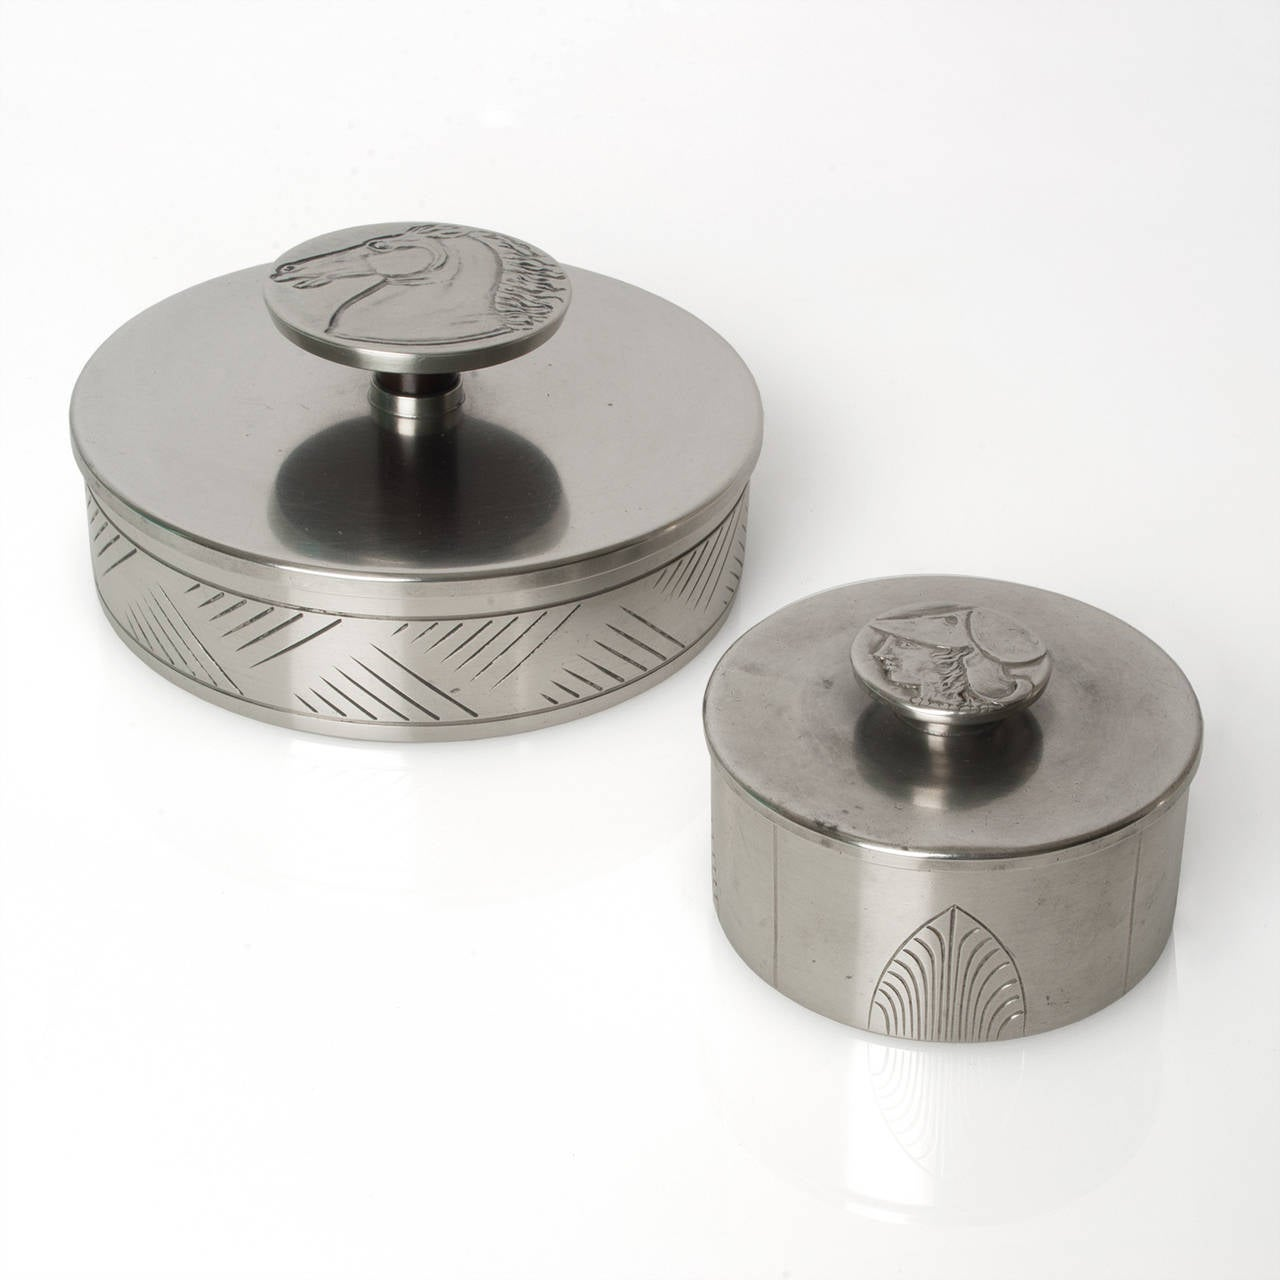 Two Swedish art deco pewter boxes designed by Oscar Antonsson for Ystad Metall. These pieces are from the